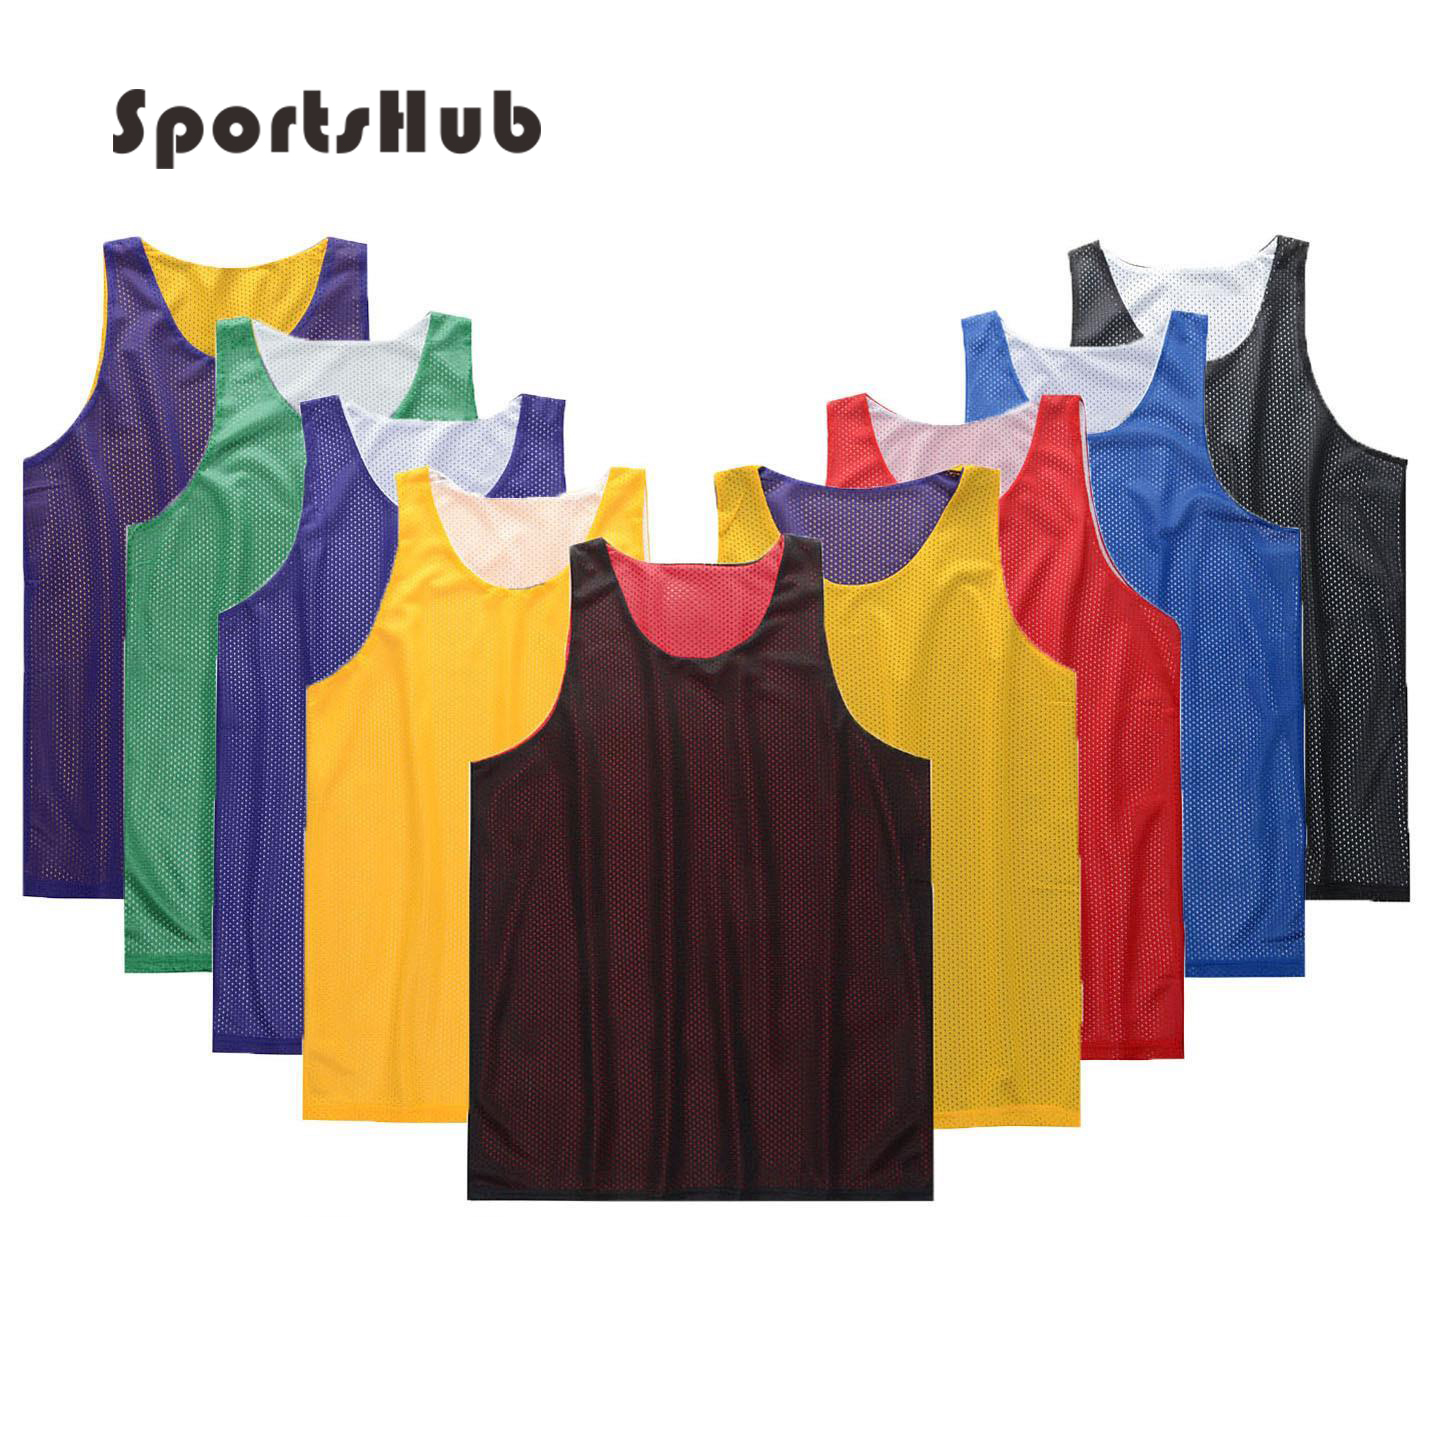 SPORTSHUB Anti-pilling Breathable Basketball Jerseys Polyester Anti-wrinkle College Basketball Jerseys Customized Prints SAA0003